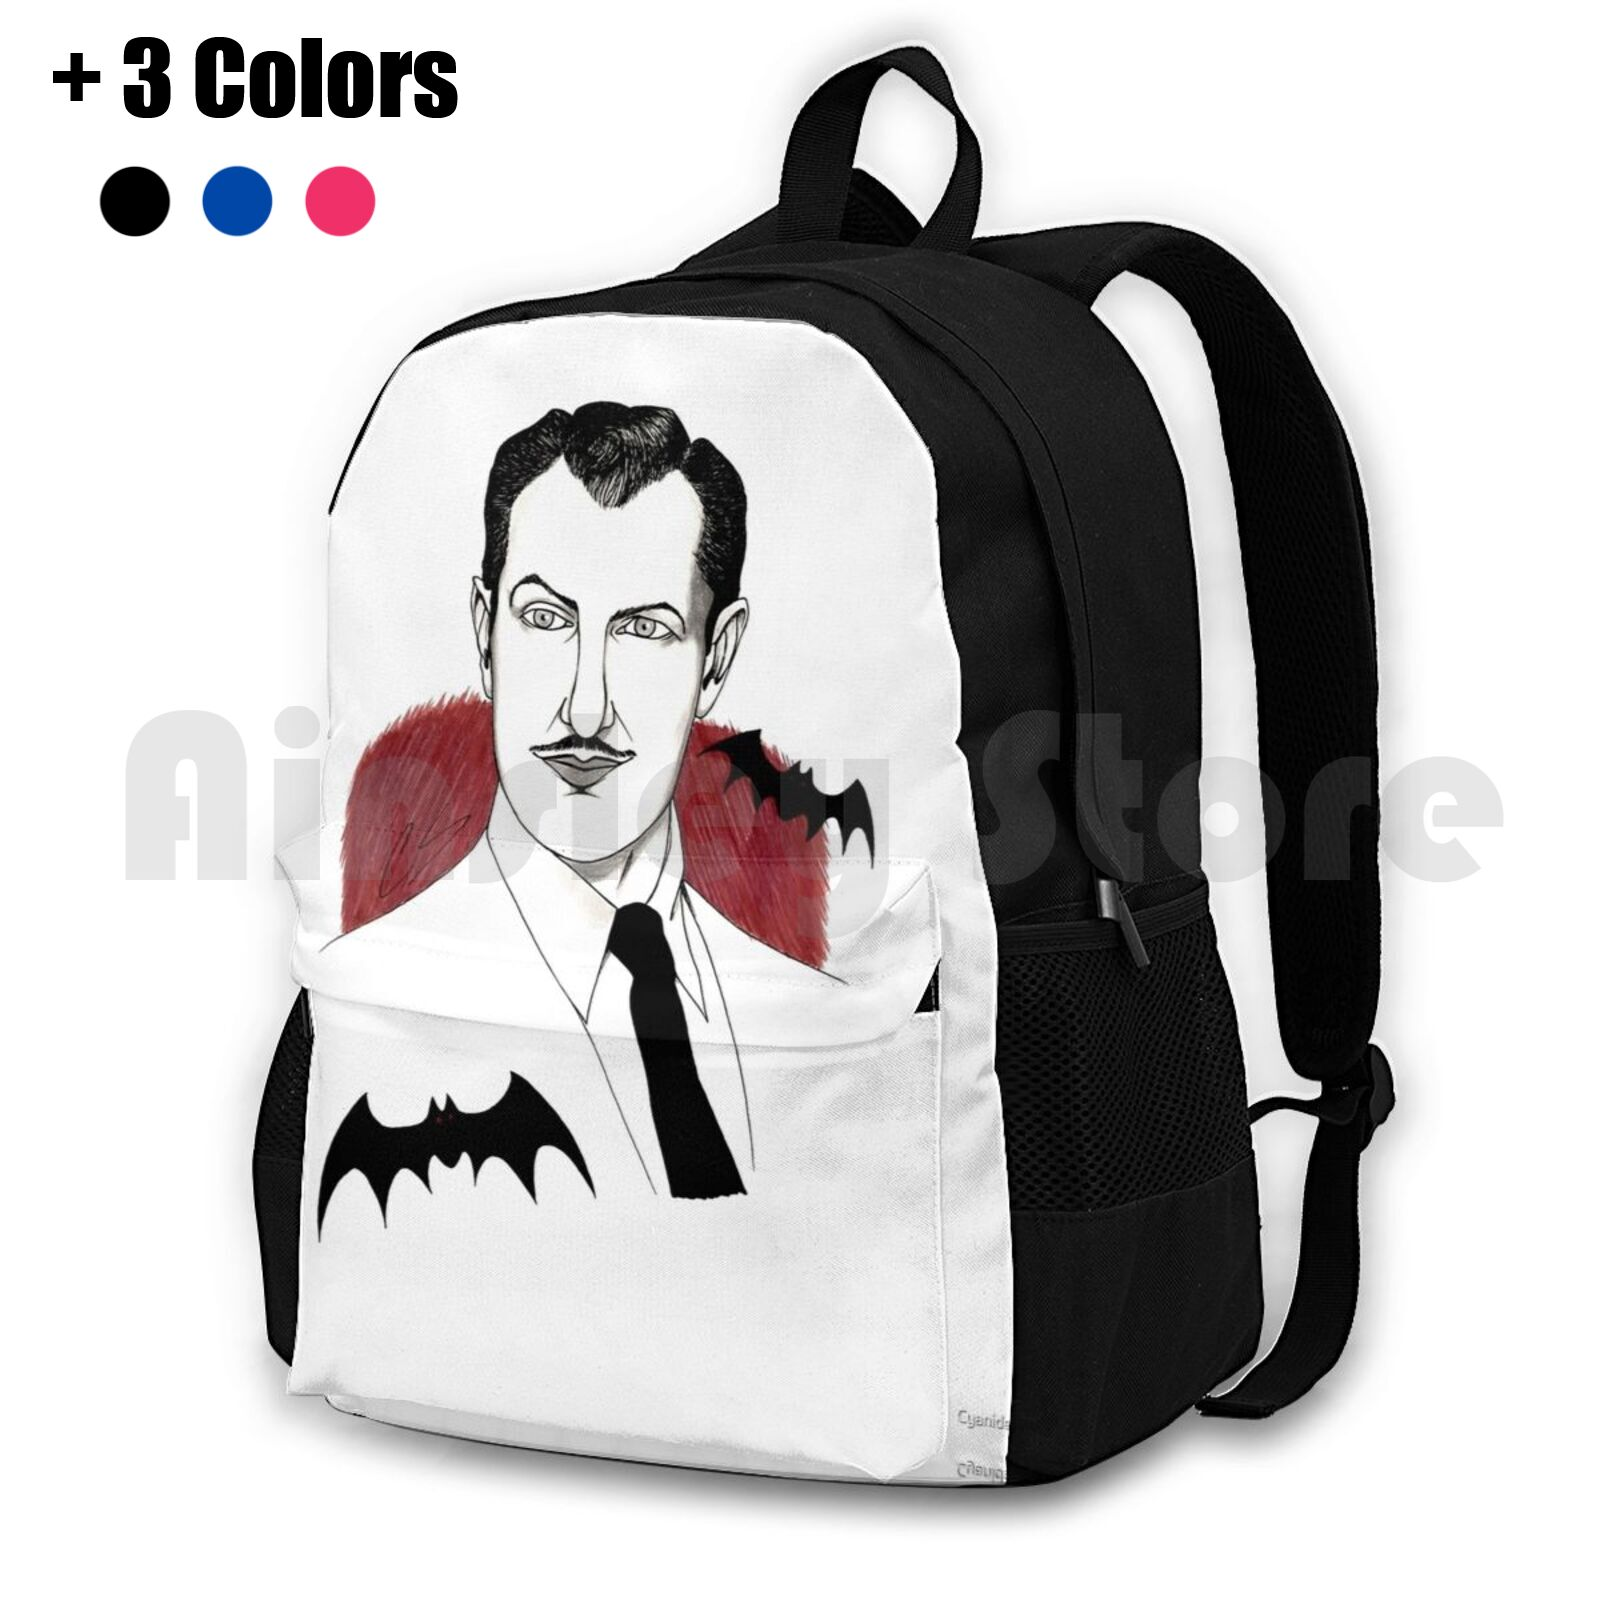 Vincent Price Outdoor Hiking Backpack Waterproof Camping Travel Vincent Price Horror Acting Classic Goth Gothic Horror Movies